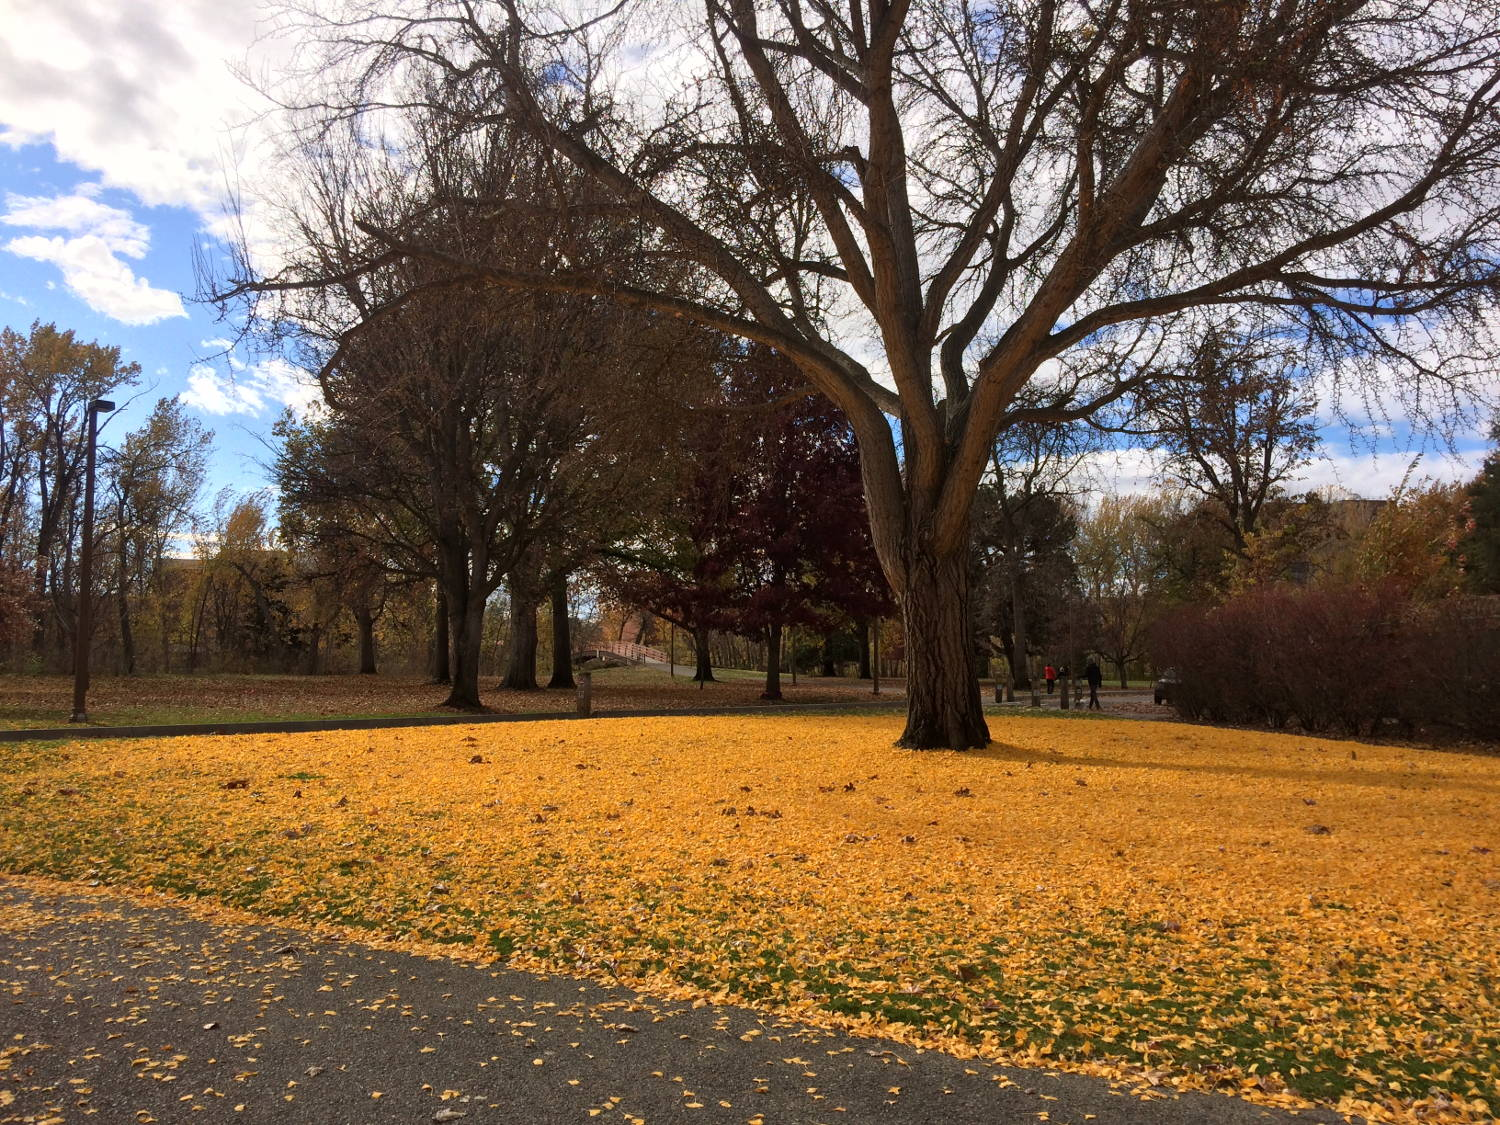 The vibrant gold leaves have fallen in Julia Davis Park, downtown Boise, Idaho.